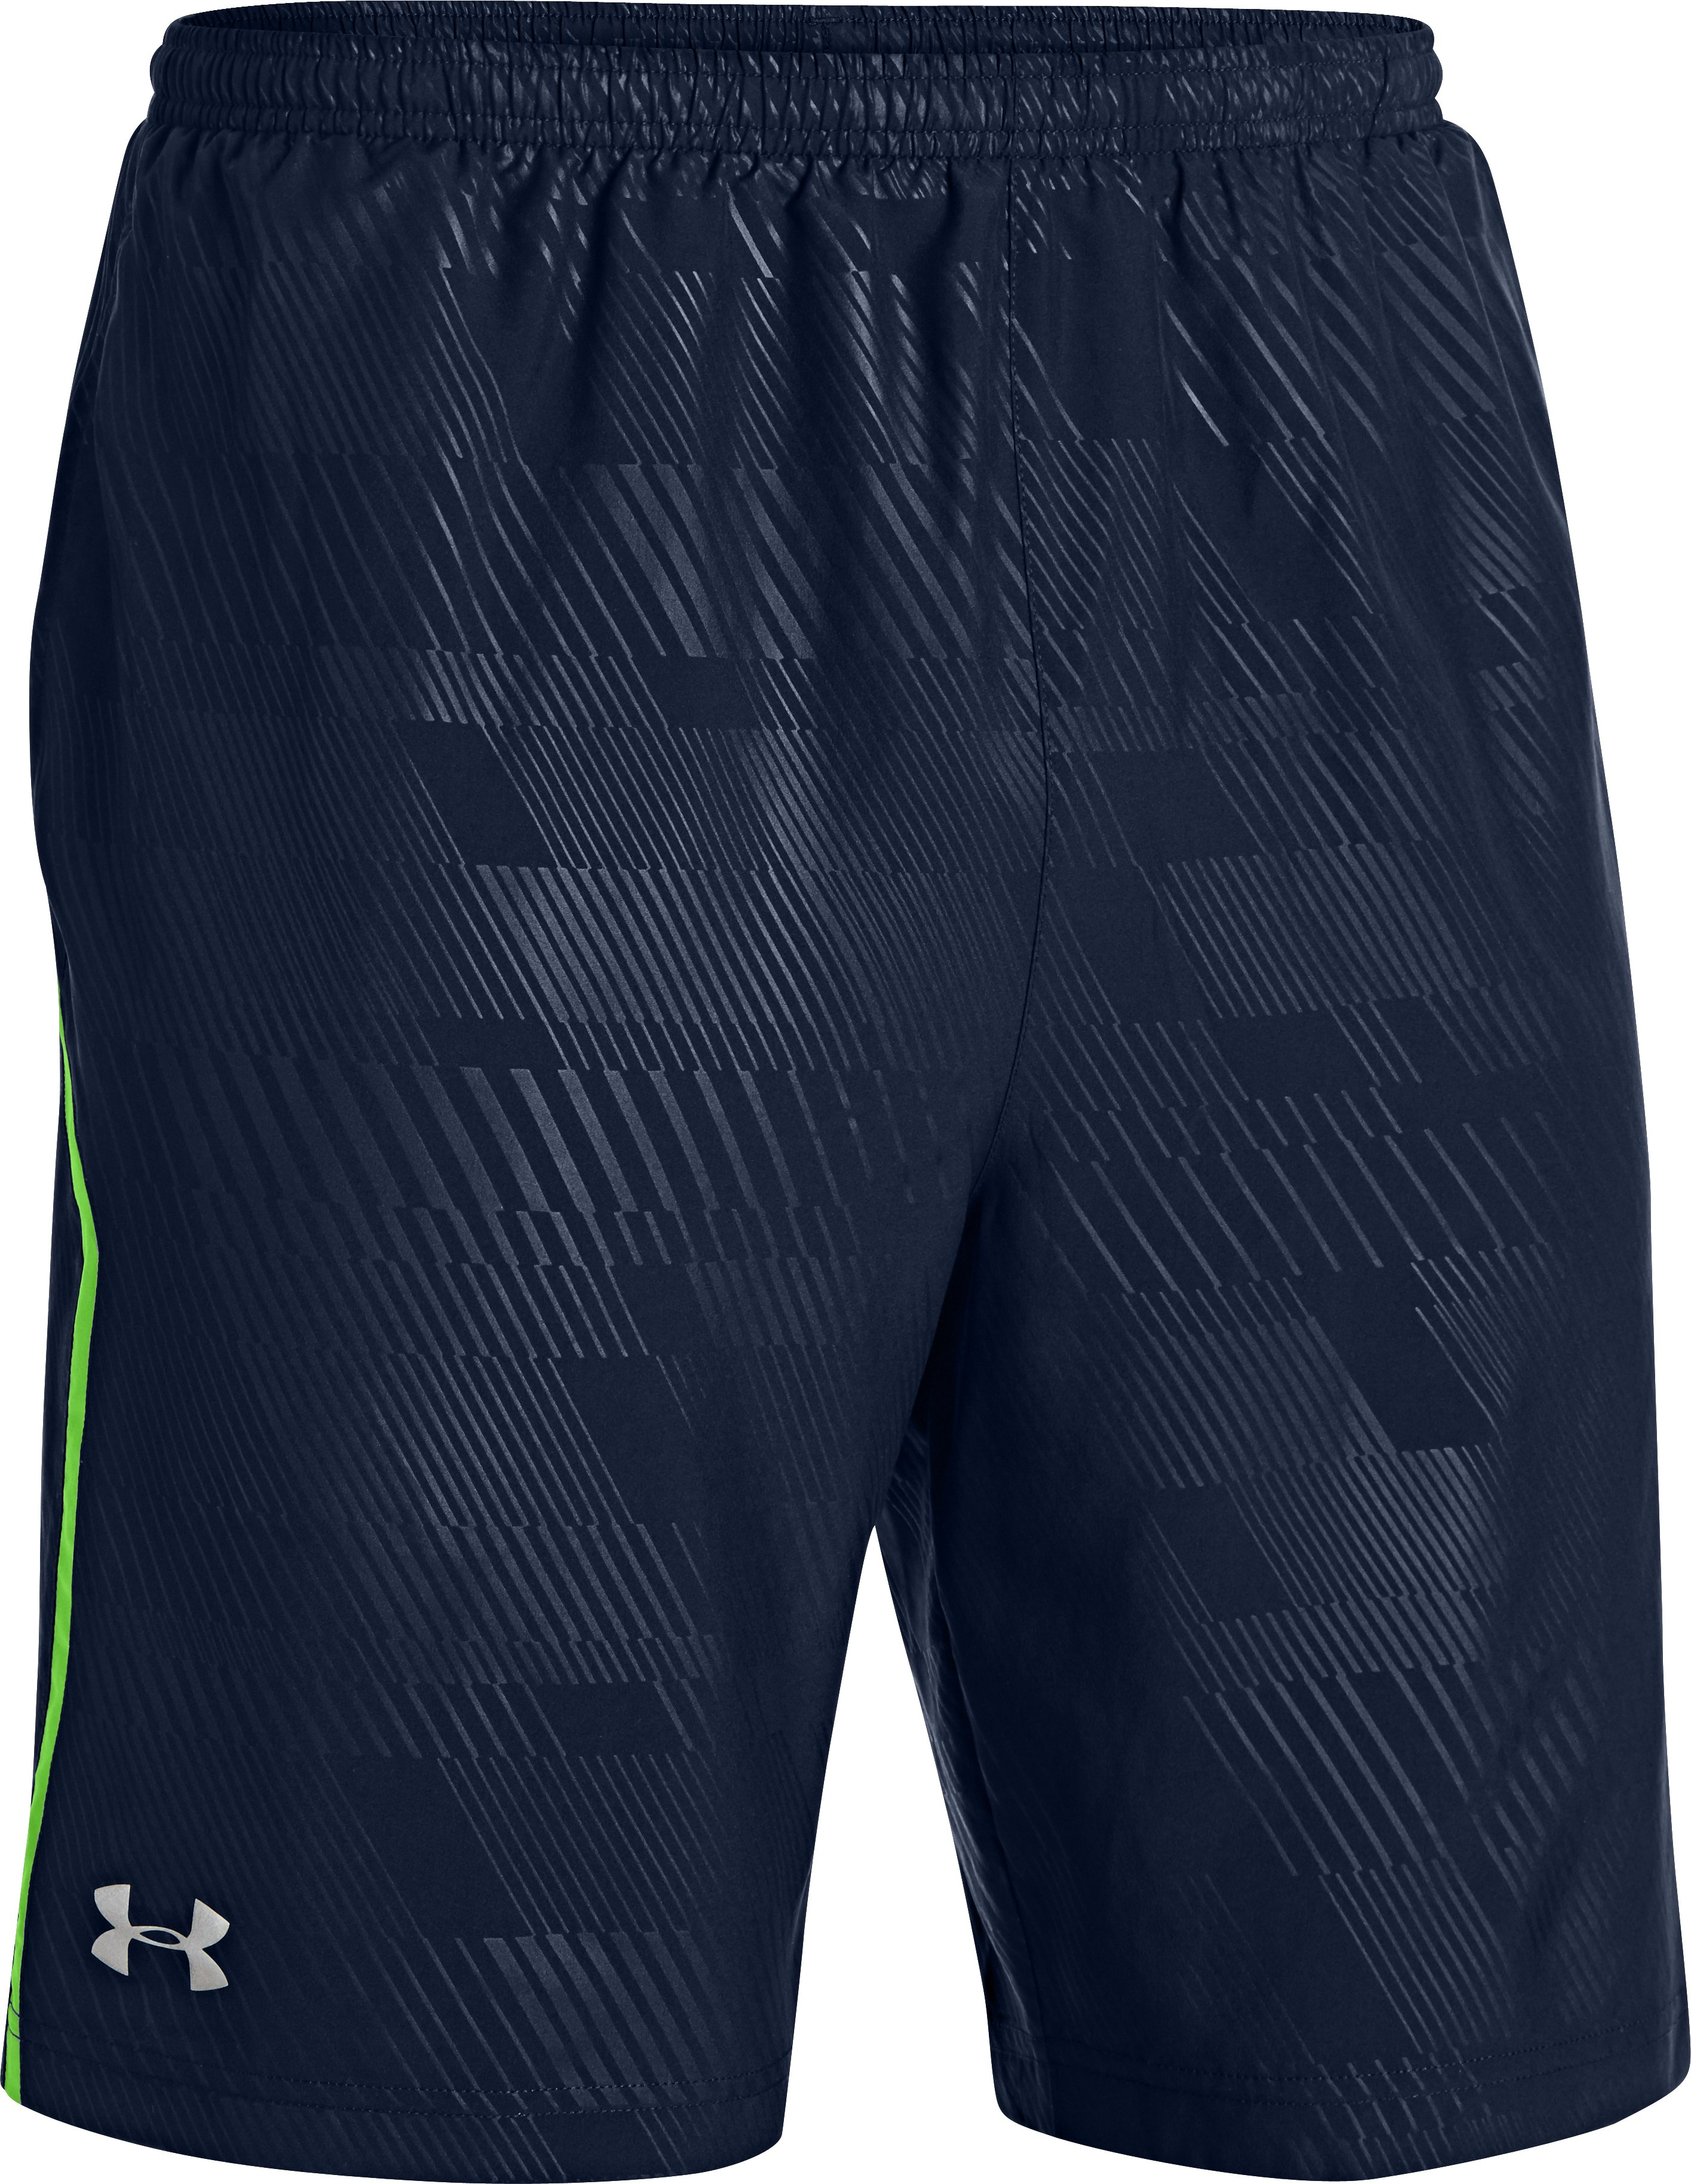 "Men's UA Escape 9"" Woven Shorts, Academy,"